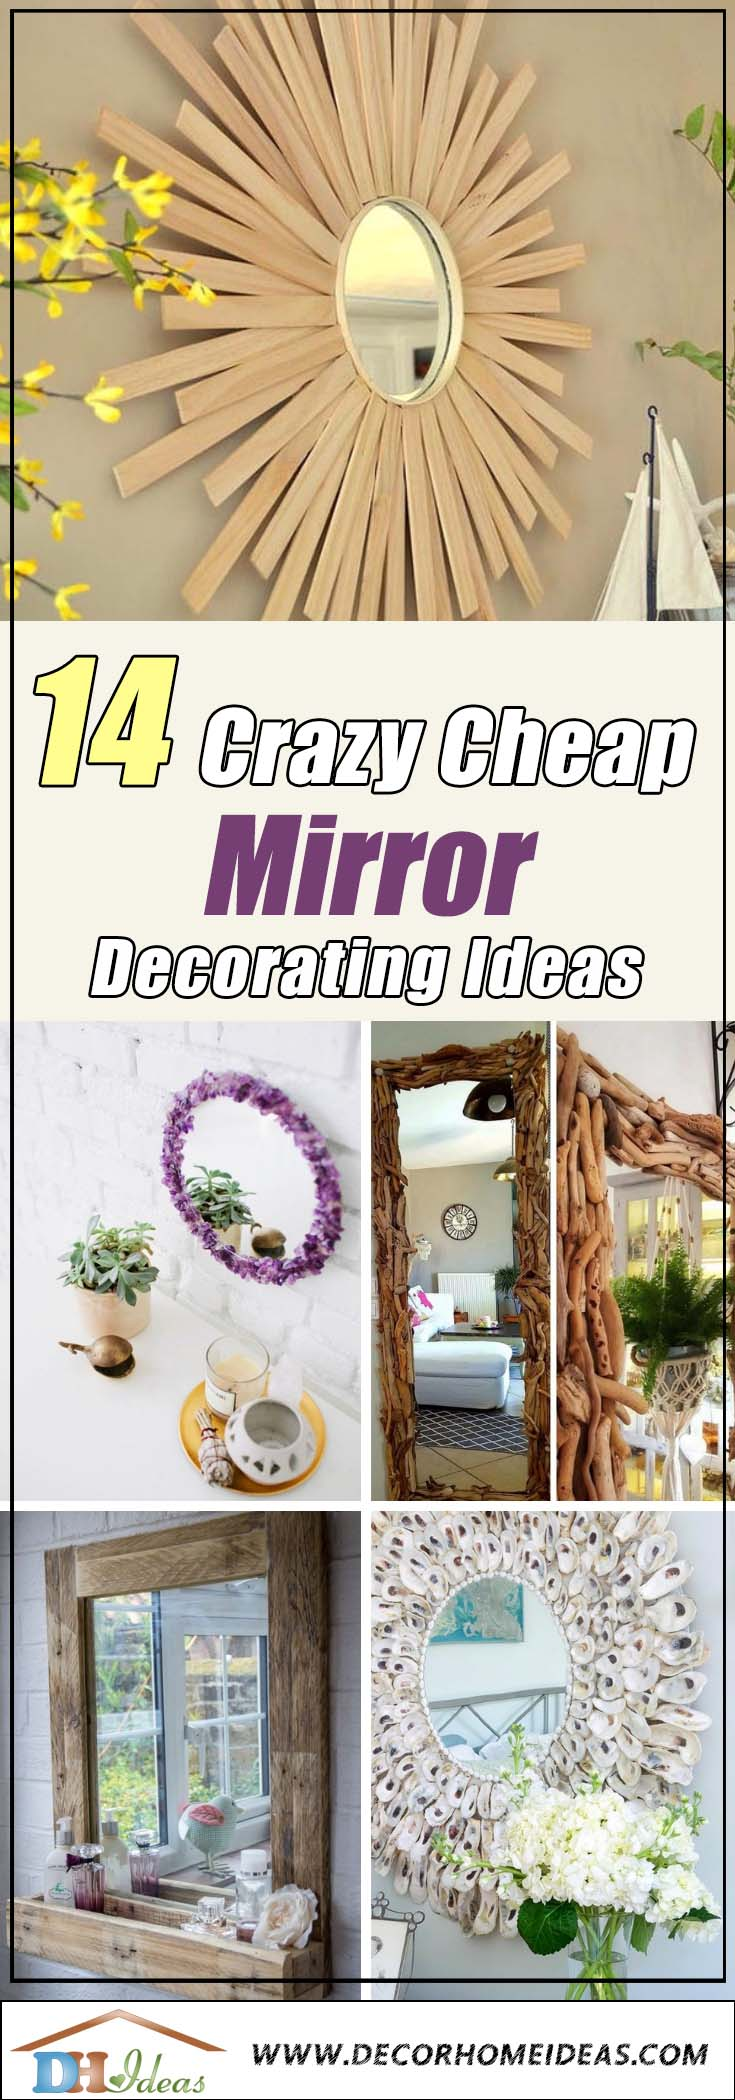 14 Crazy Cheap Mirror Decorating Ideas #diy #mirror #diymirror #cheapmirror #decorhomeideas